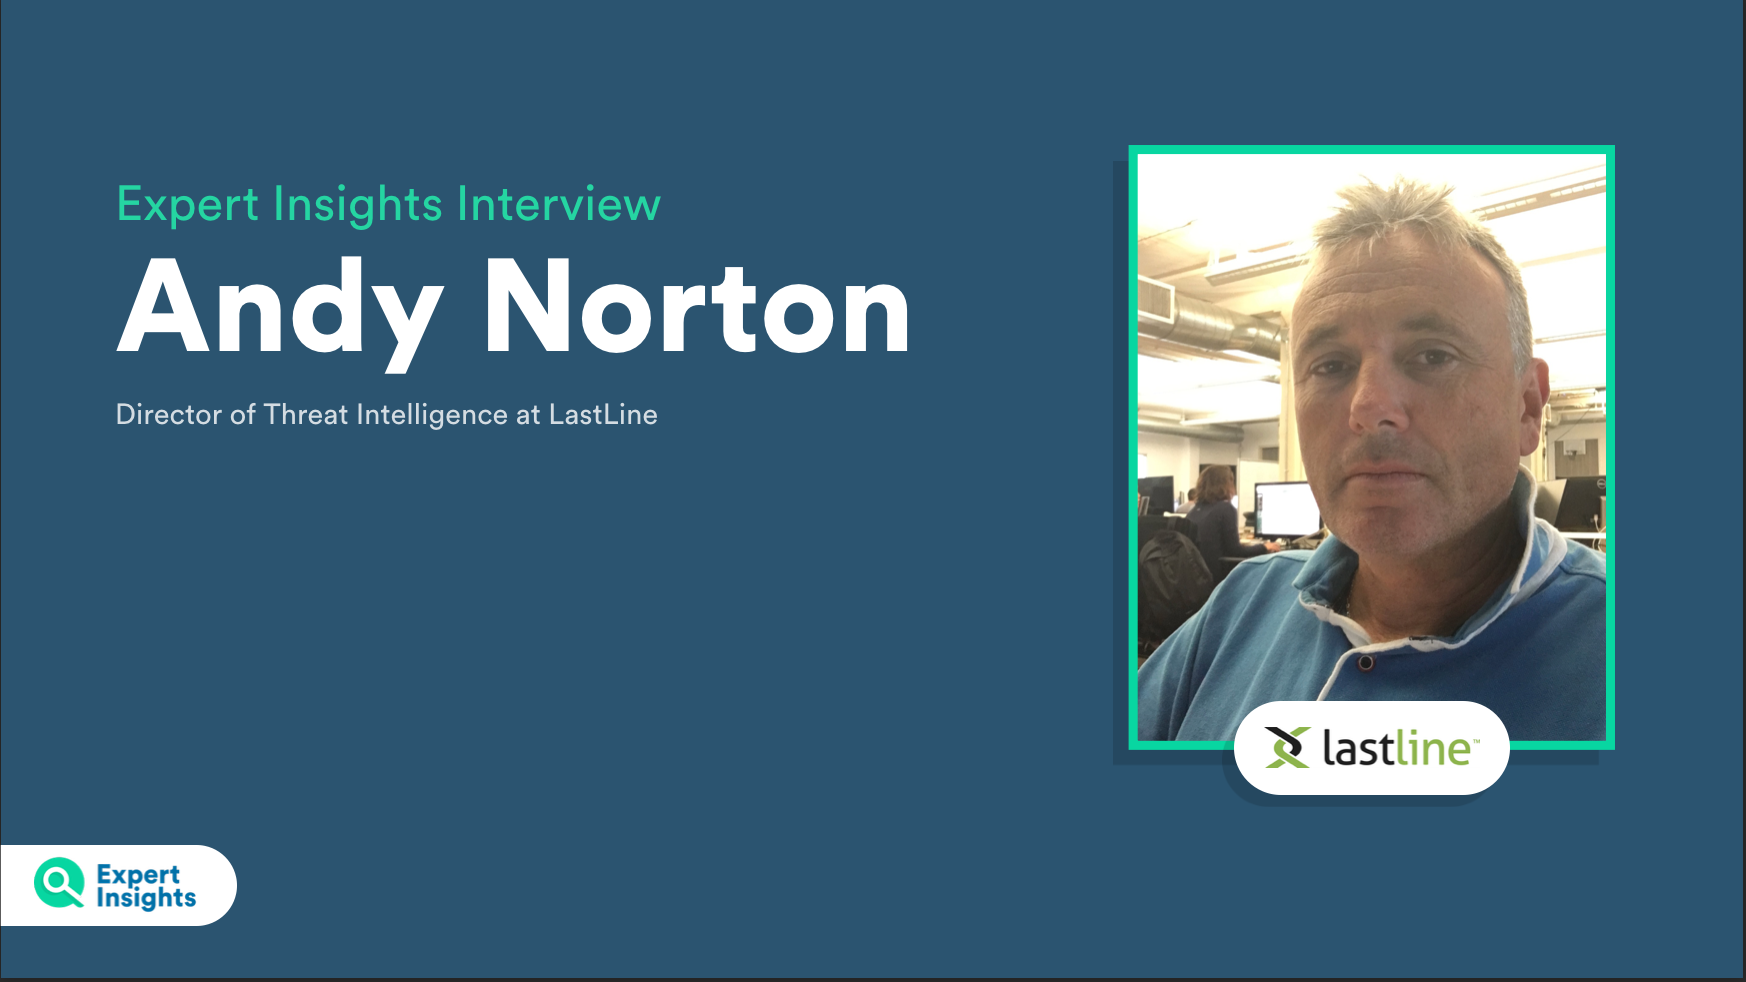 Andy Norton - Director of Threat Intelligence Latline - Expert Insights